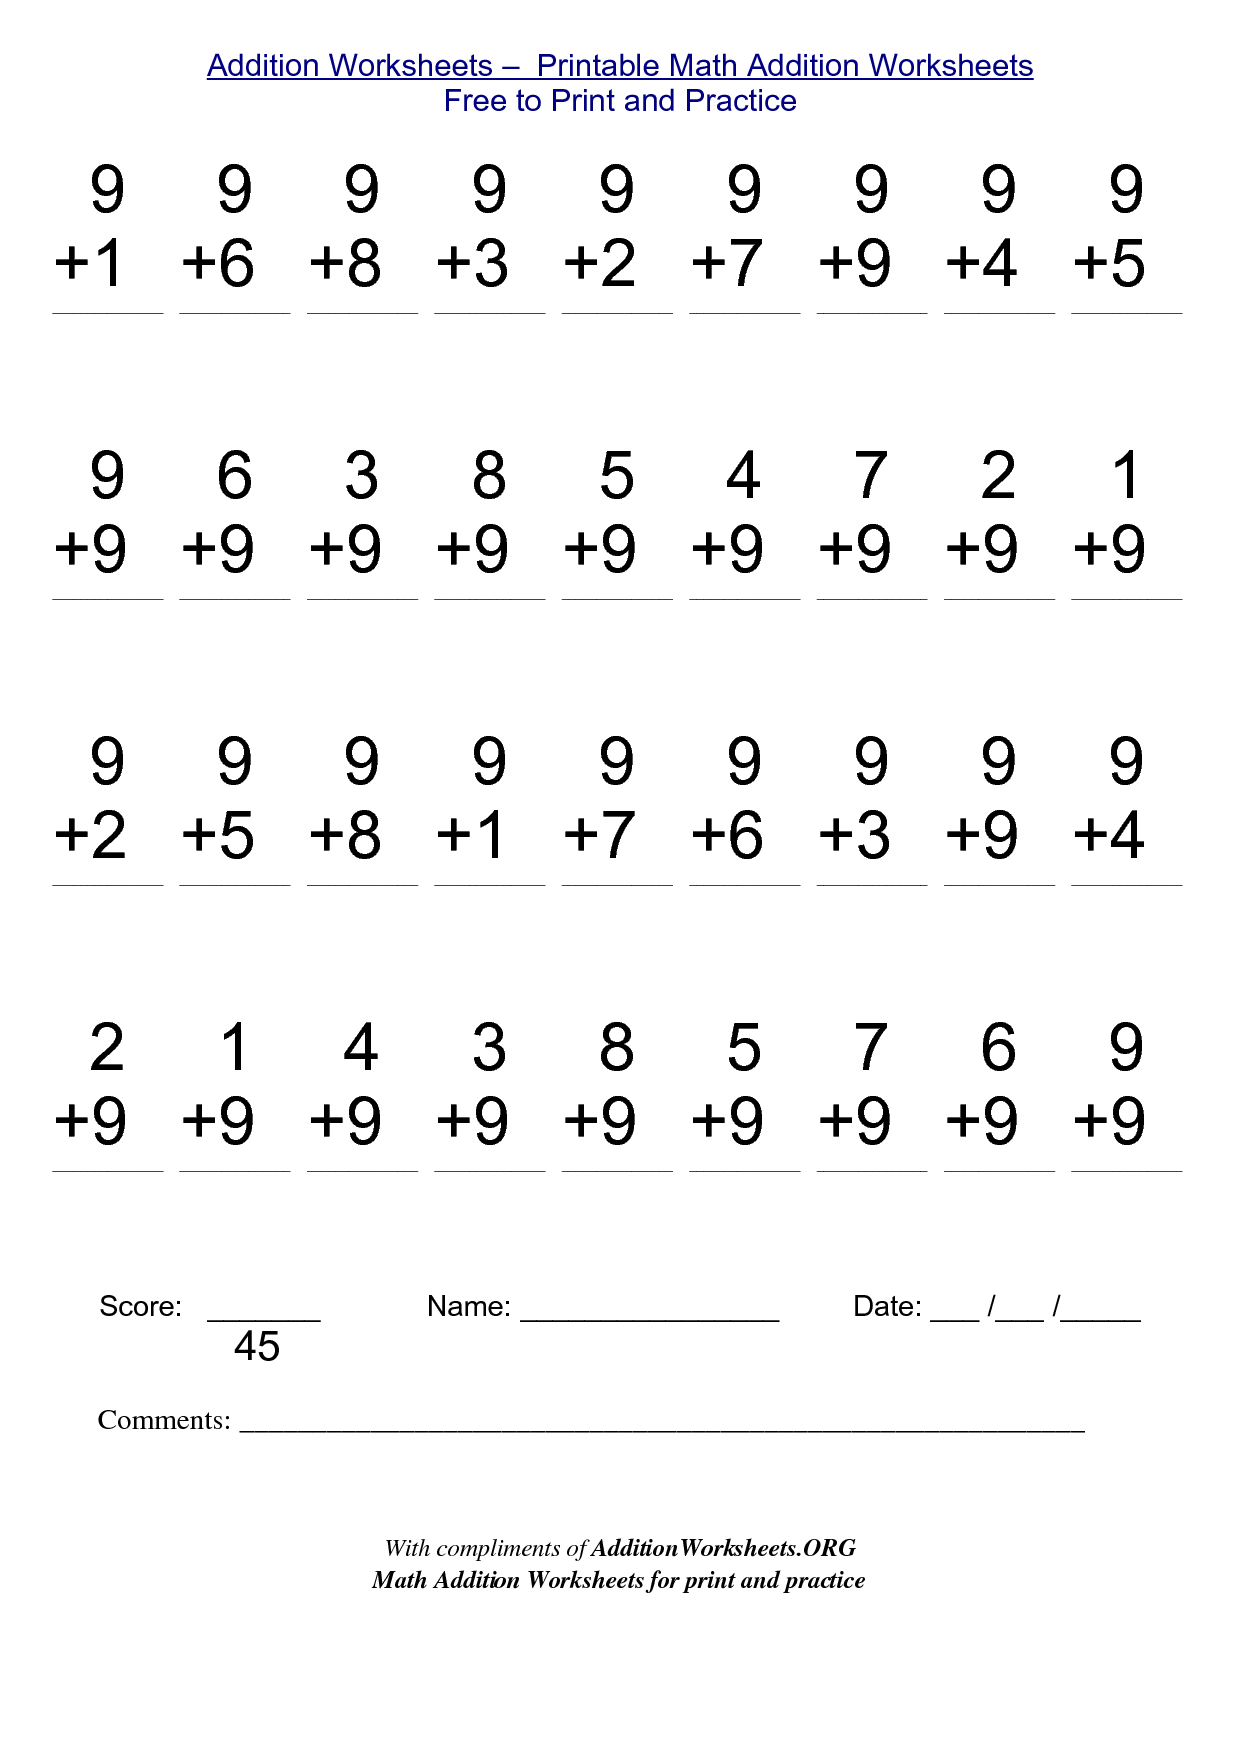 Worksheets Math Addition Worksheets 1st Grade singapore math kindergarten worksheets first grade addition printable free to print